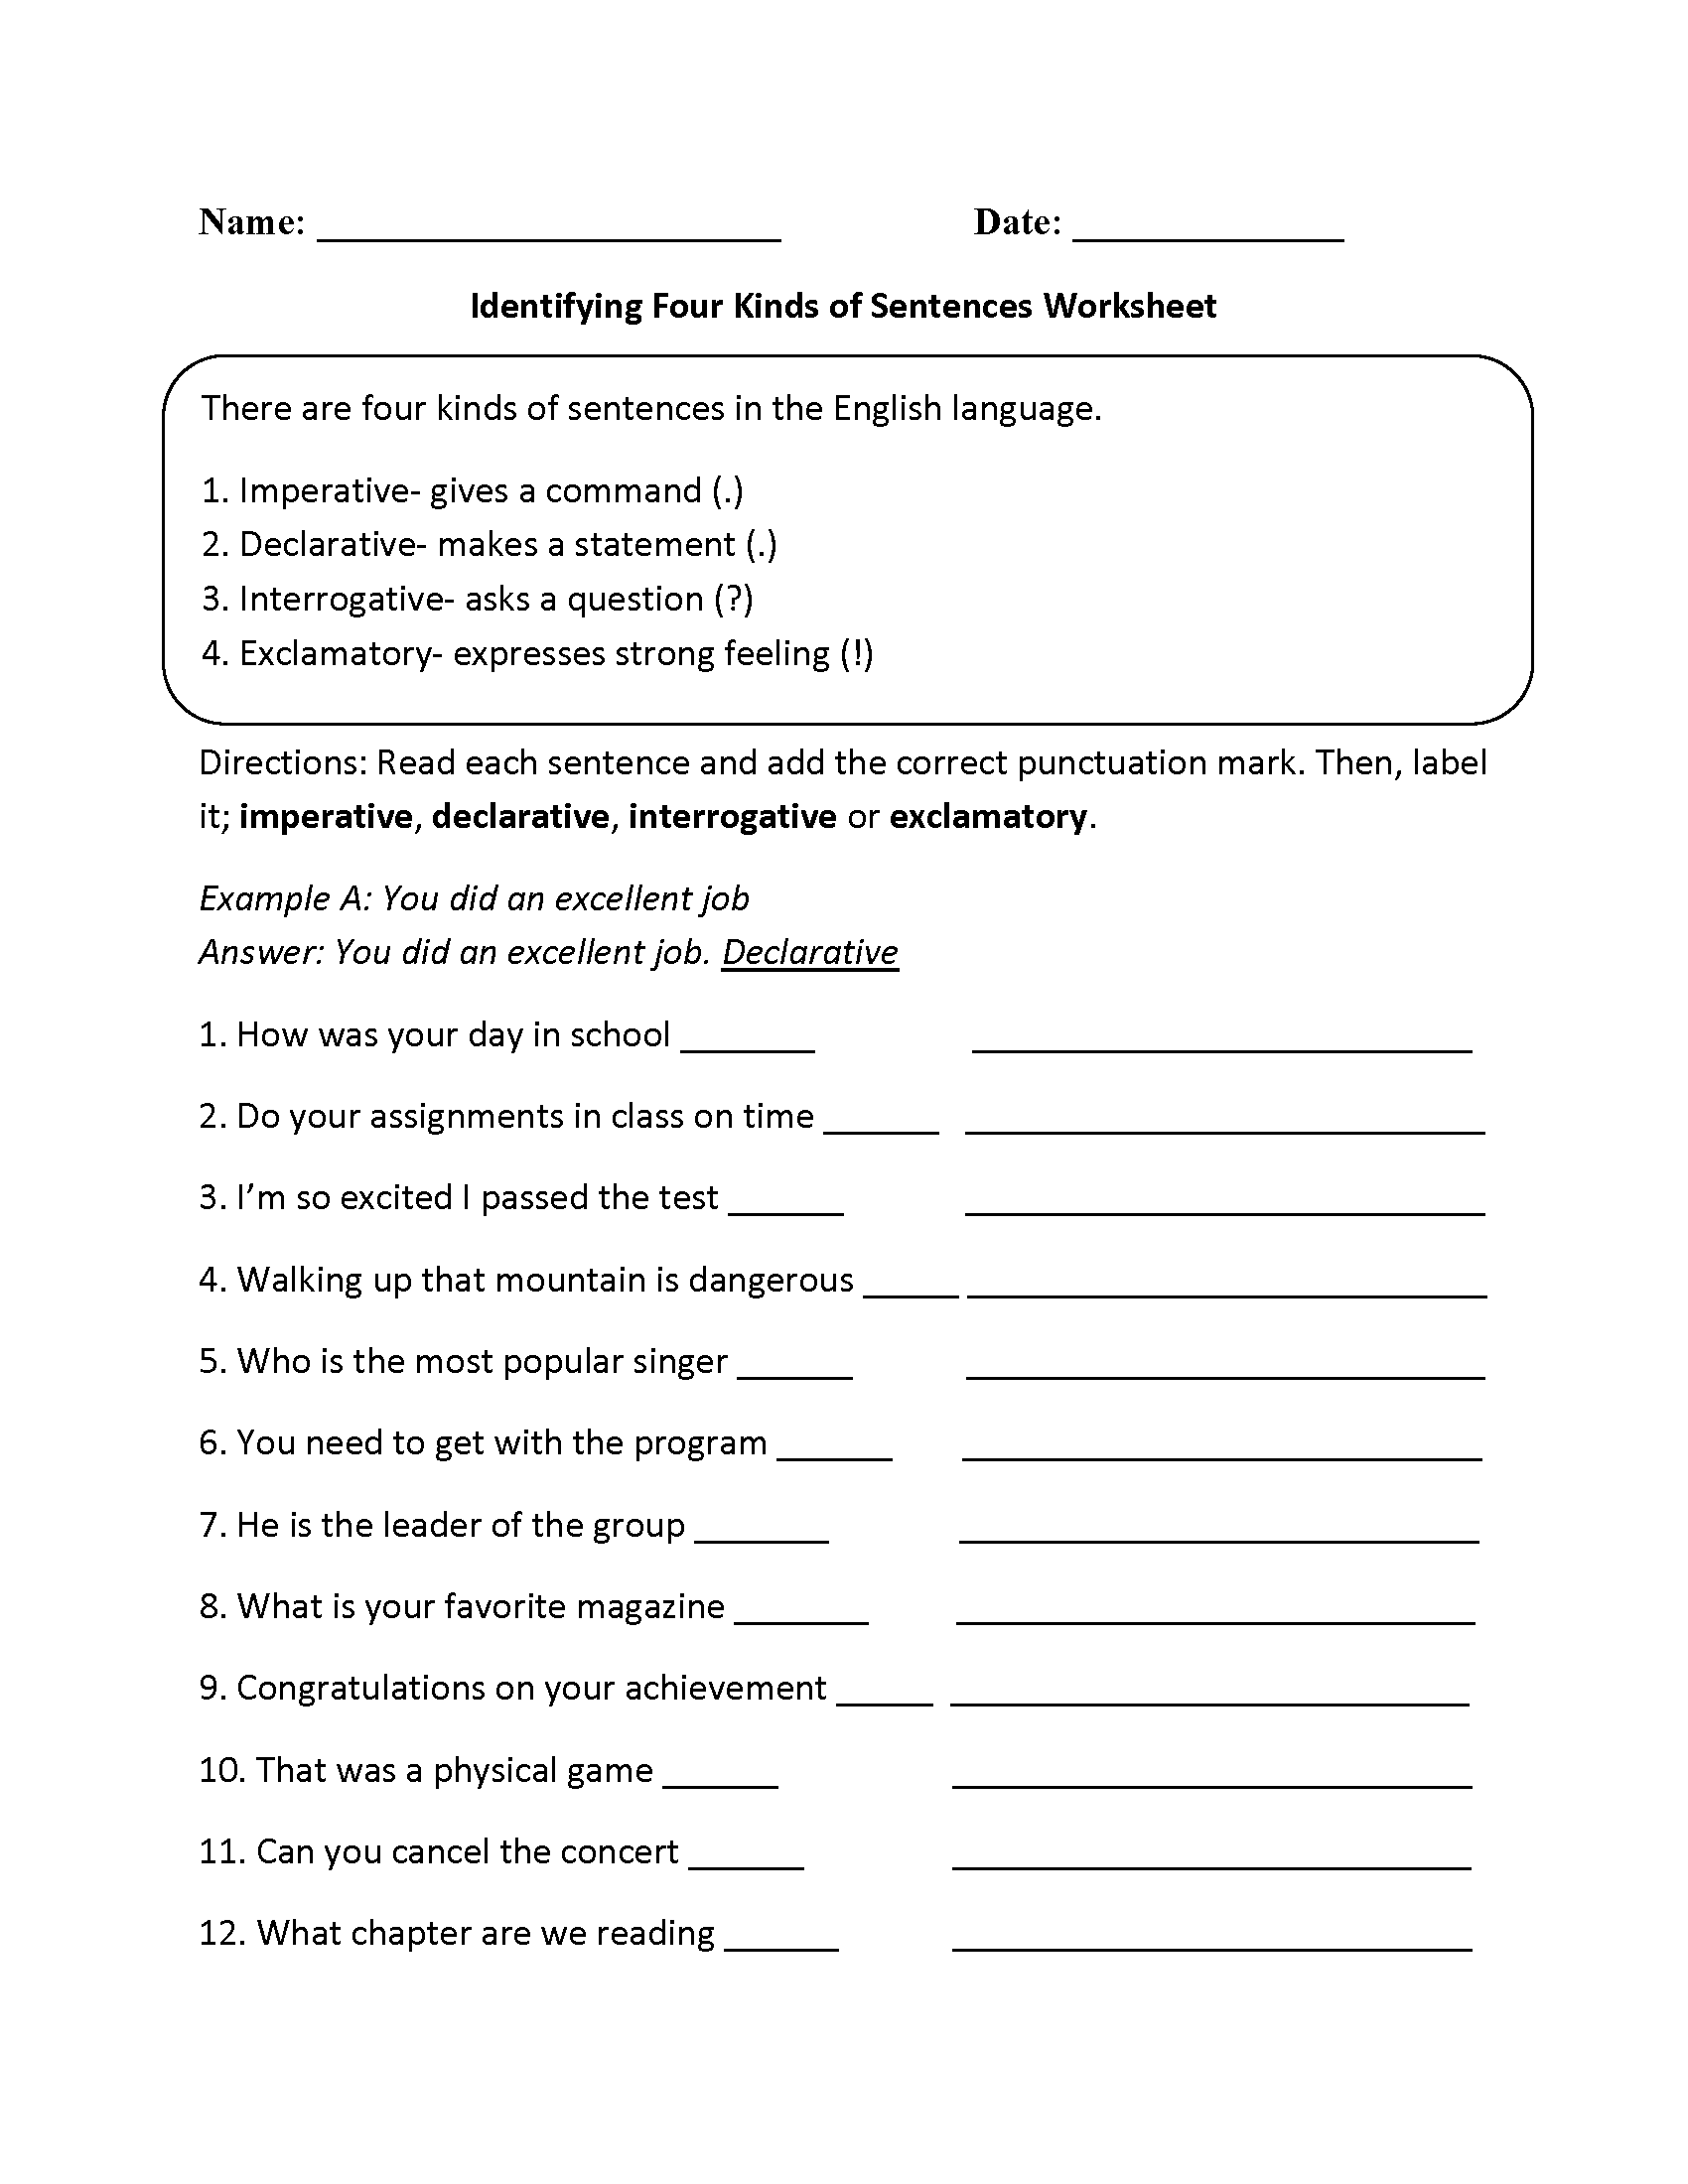 Worksheets Four Types Of Sentences Worksheet practicing four kinds of sentences worksheet language arts worksheet